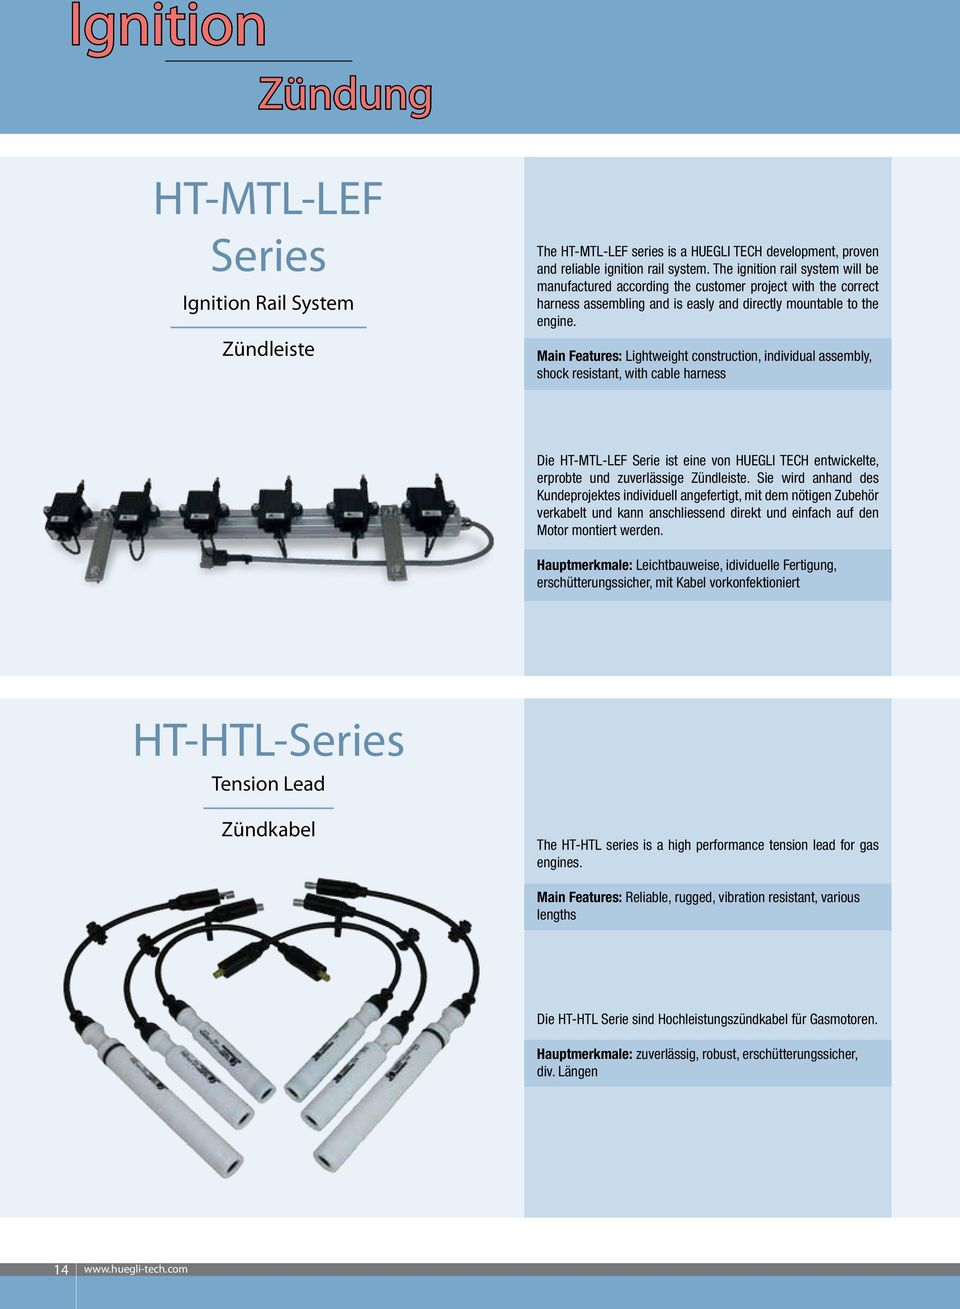 Main Features: Lightweight construction, individual assembly, shock resistant, with cable harness Die HT-MTL-LEF Serie ist eine von HUEGLI TECH entwickelte, erprobte und zuverlässige Zündleiste.